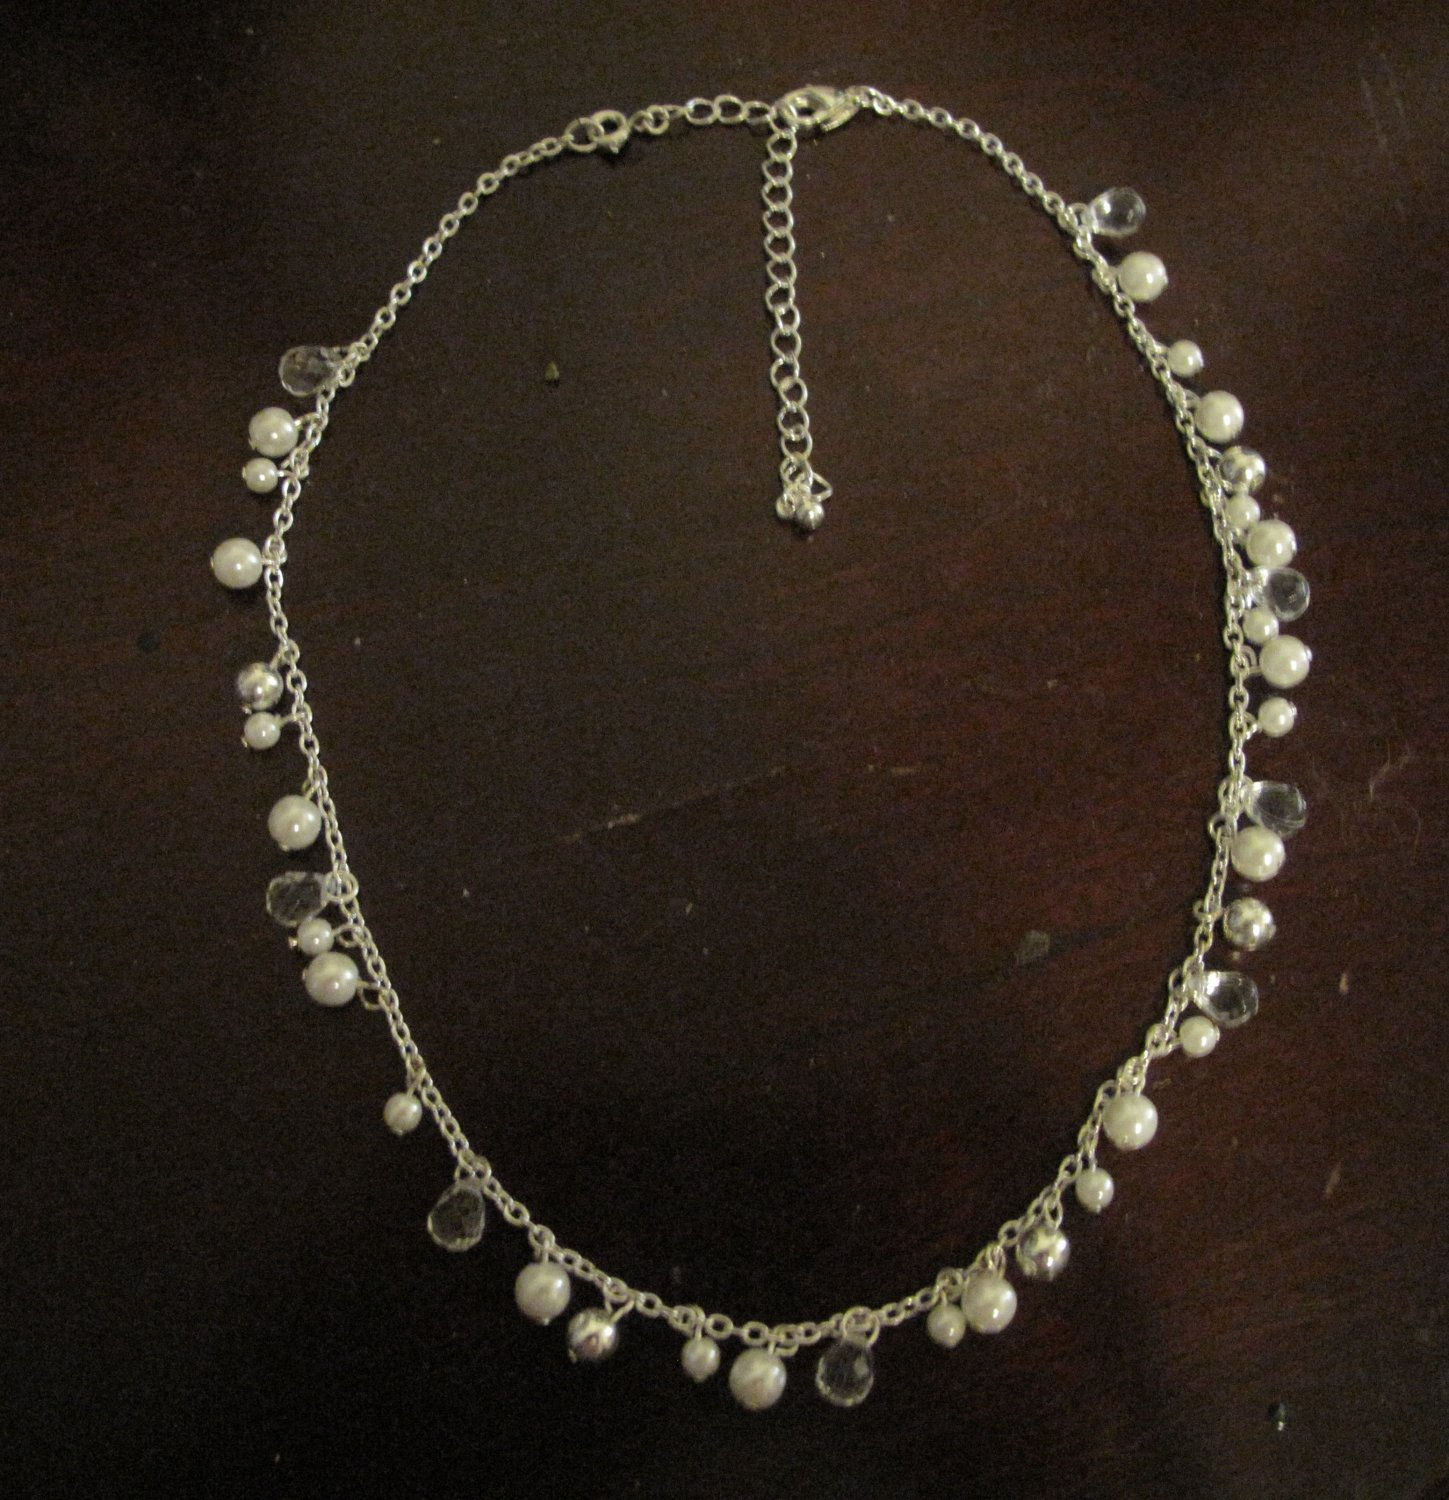 Women's Silvertone Faux Pearls and Beads Necklace, 16 inches